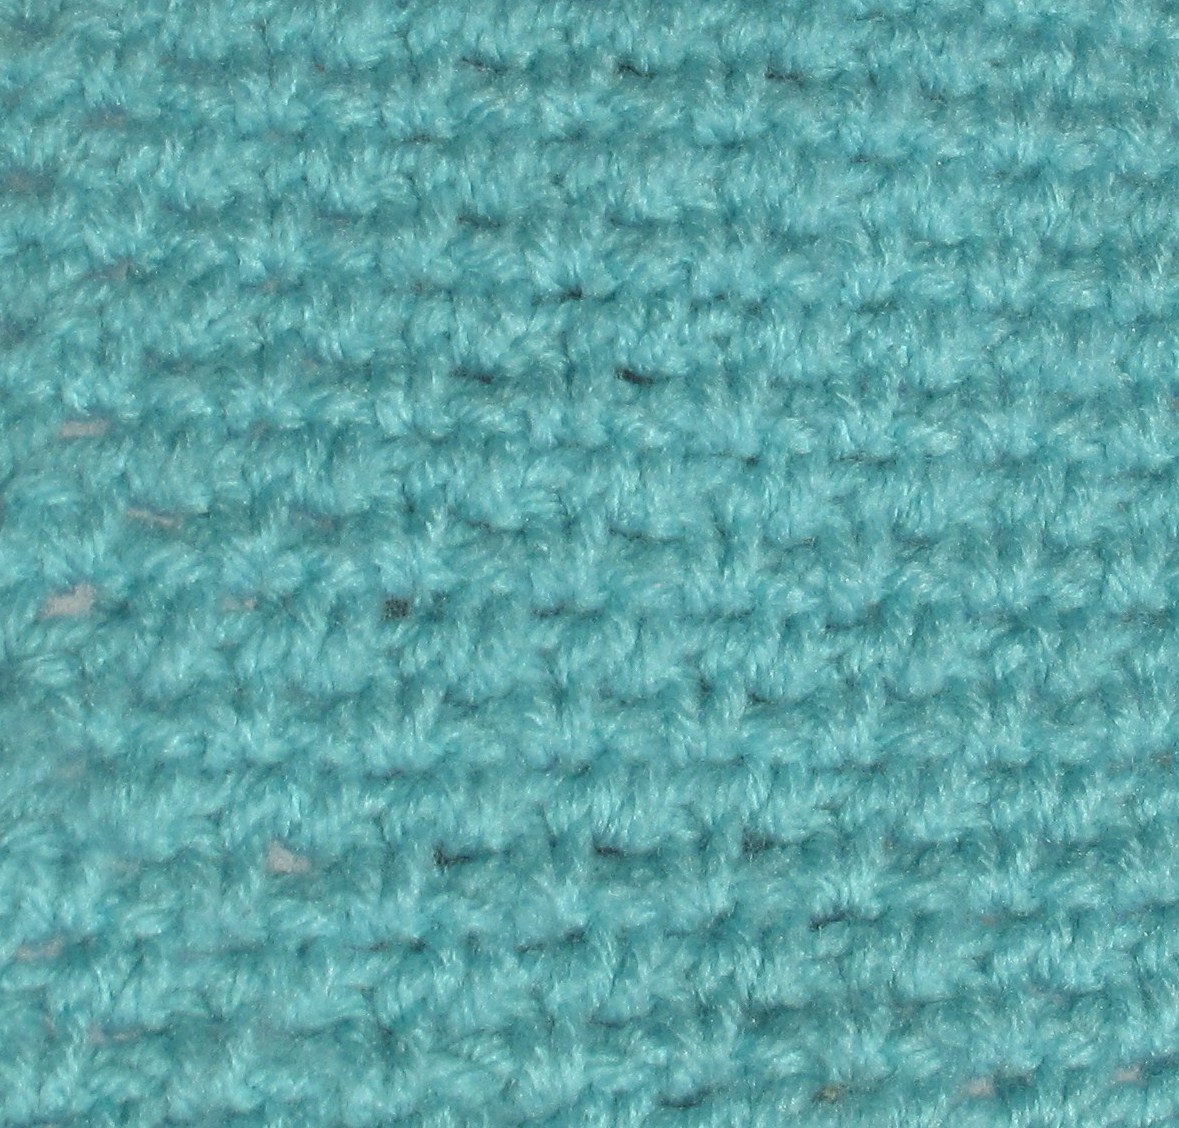 Crochet Stitches Moss Stitch : ReCrochetions: Sampler Square #1 - Single Crochet Moss Stitch